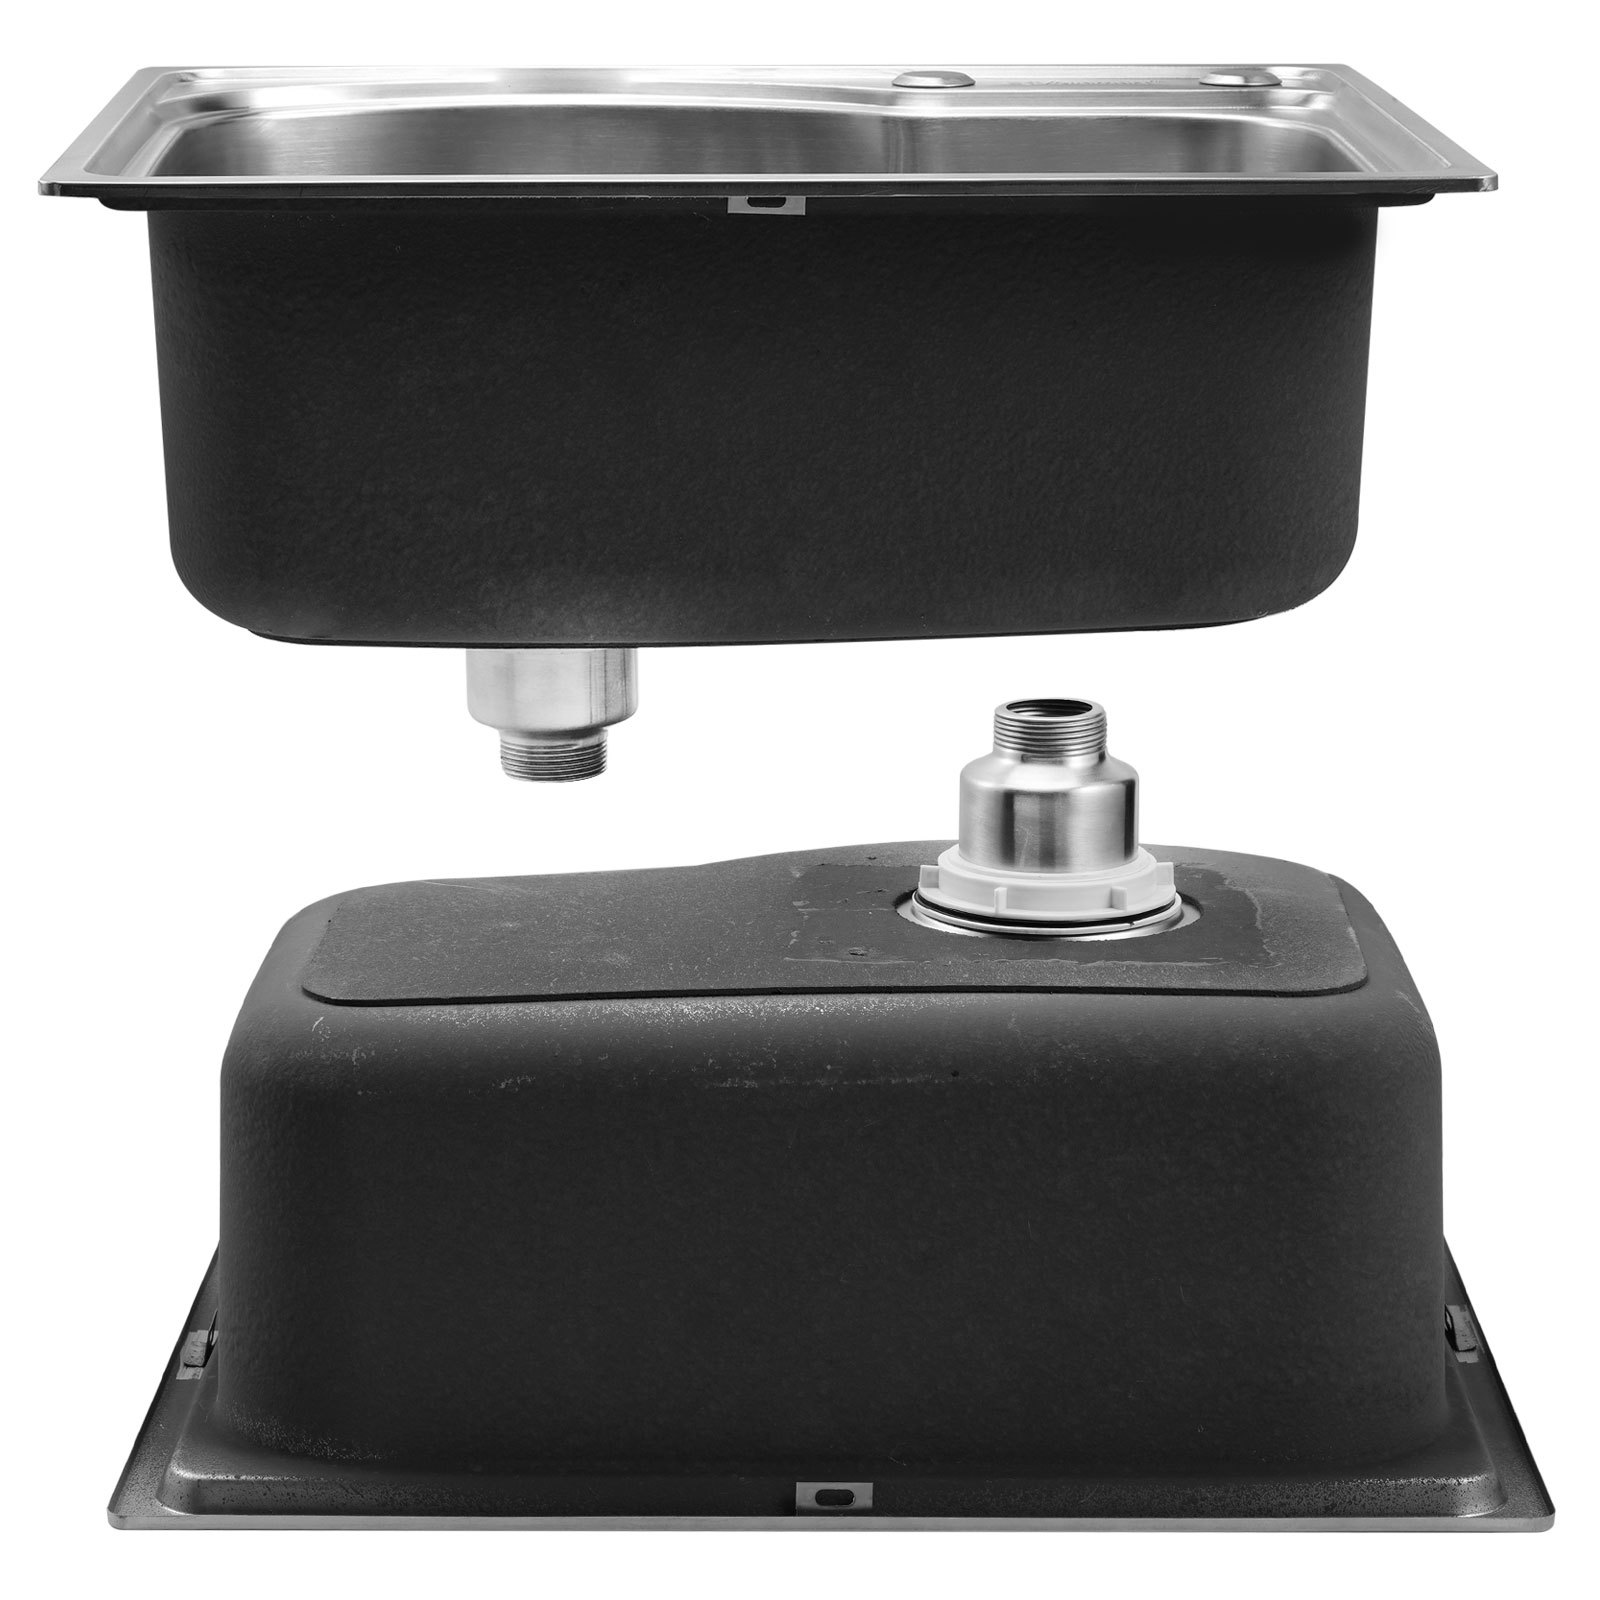 Stainless steel kitchen sink laundry catering topmount - Square stainless steel bathroom sink ...